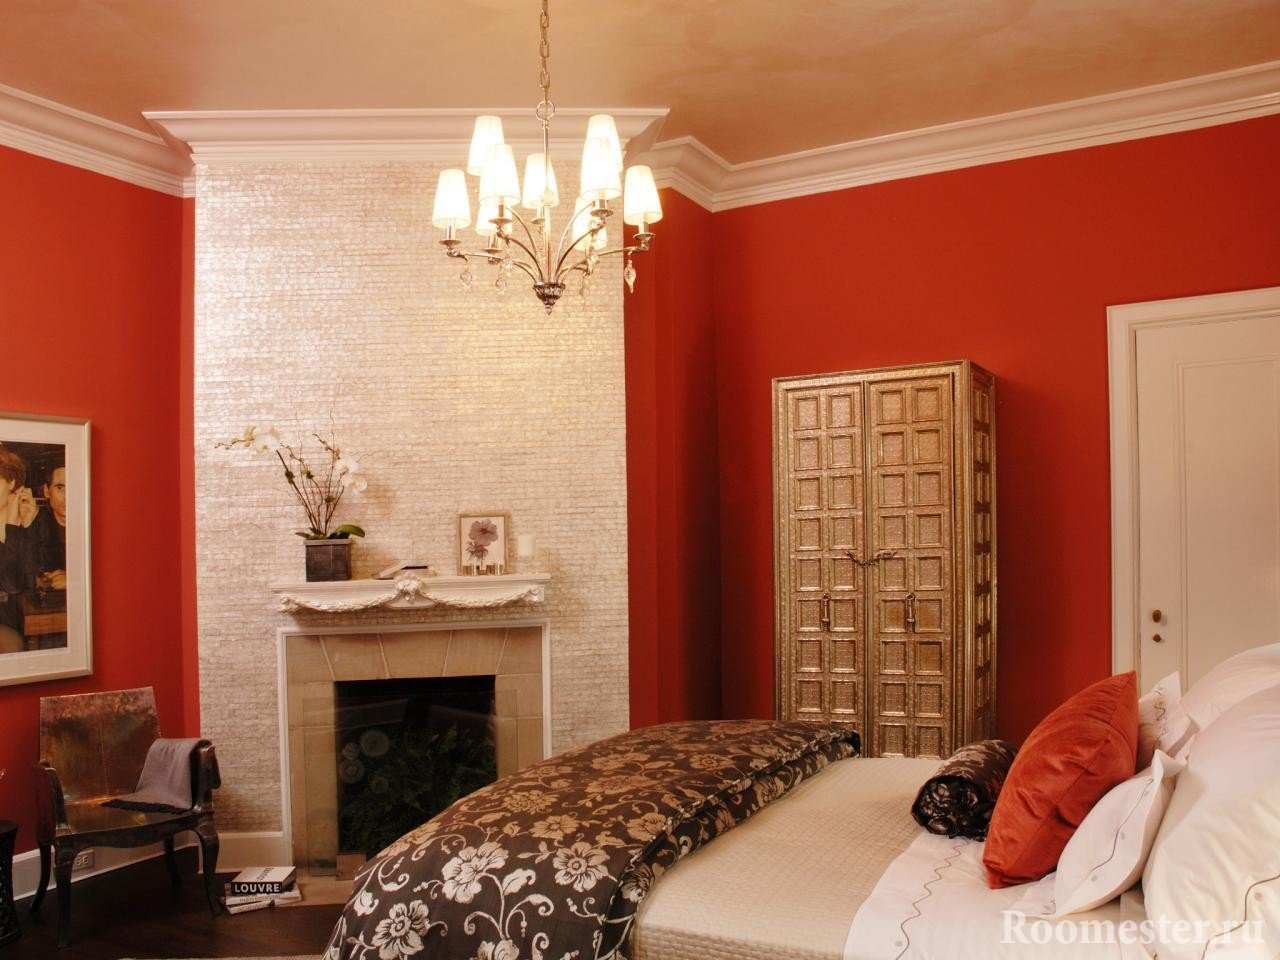 White and red in the bedroom